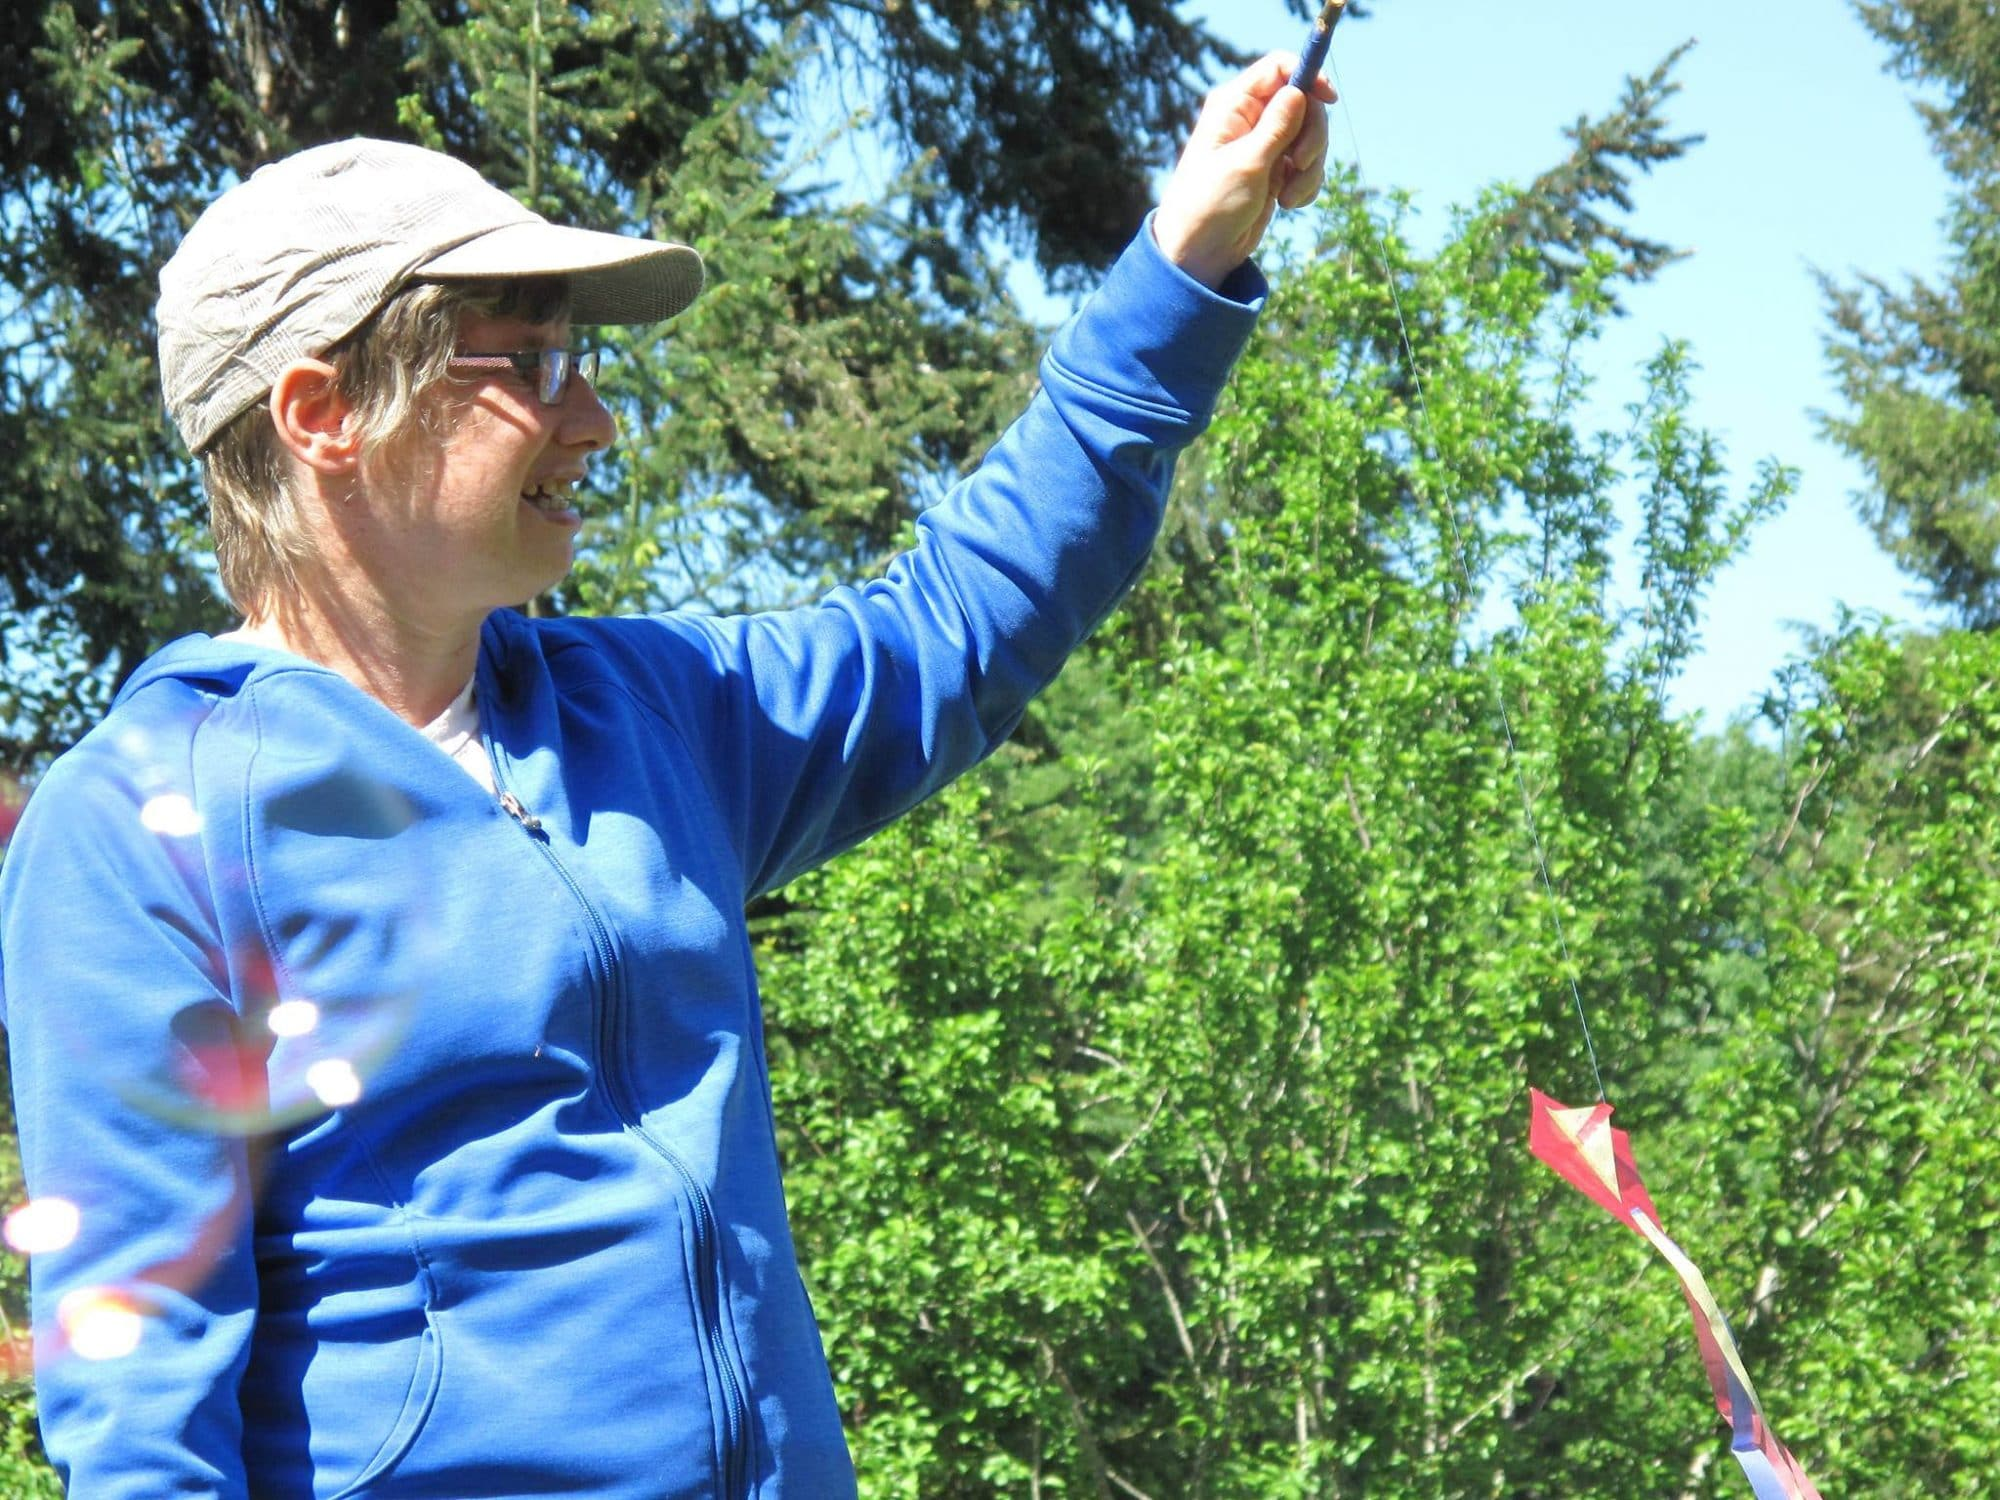 A woman wearing a white hat and a blue sweater is holding up a kite. She is standing in front of trees.